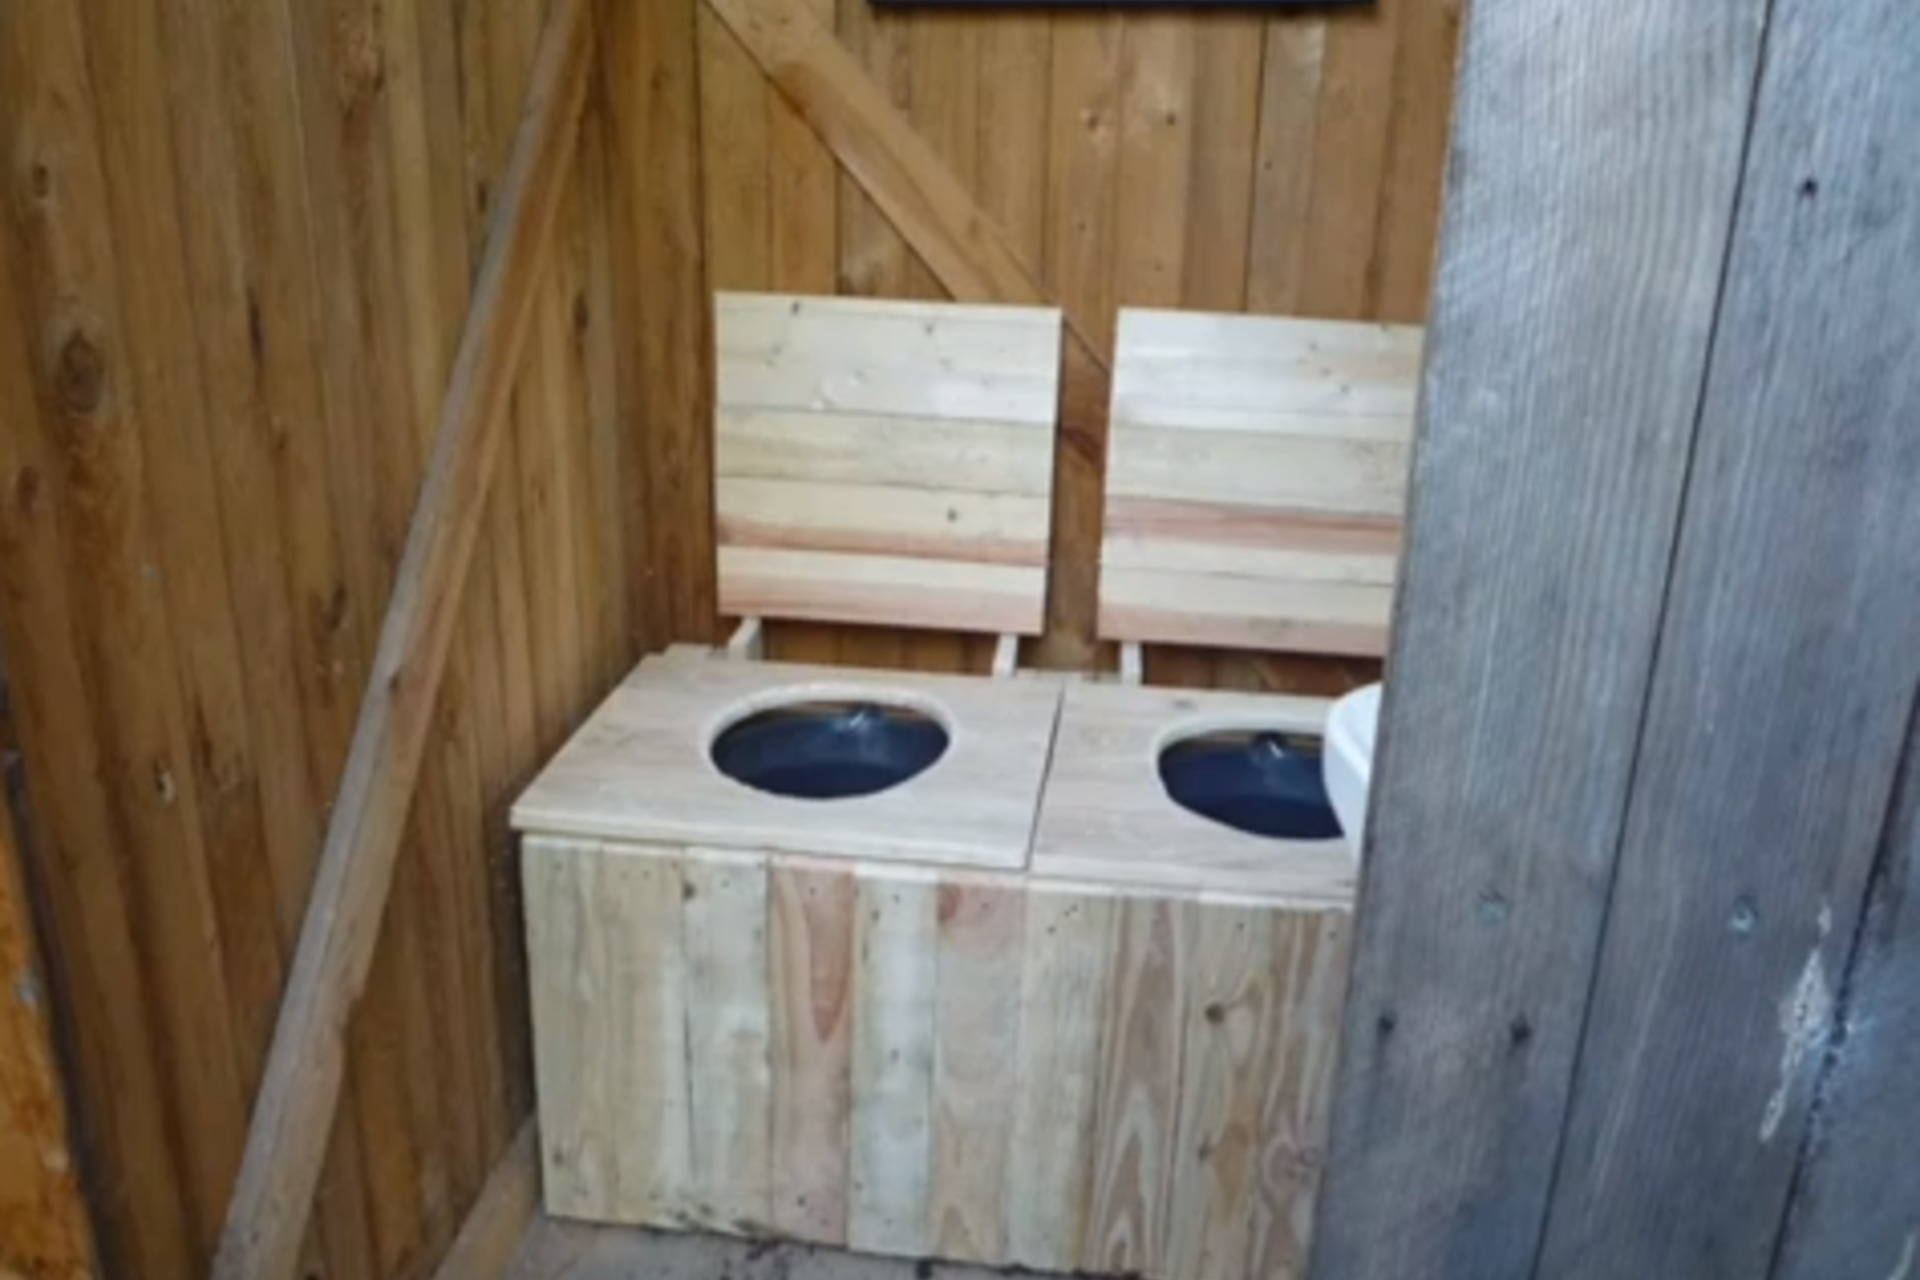 Build an Outhouse - DIY on courtyard building design, lounge building design, room building design, parking building design, school building design, green building design, garage building design, hotel building design, apartment building design, city building design, factory building design, shed building design, hospital building design, wood building design, store building design, warehouse building design, loft building design, house building design, bridge building design, deck building design,